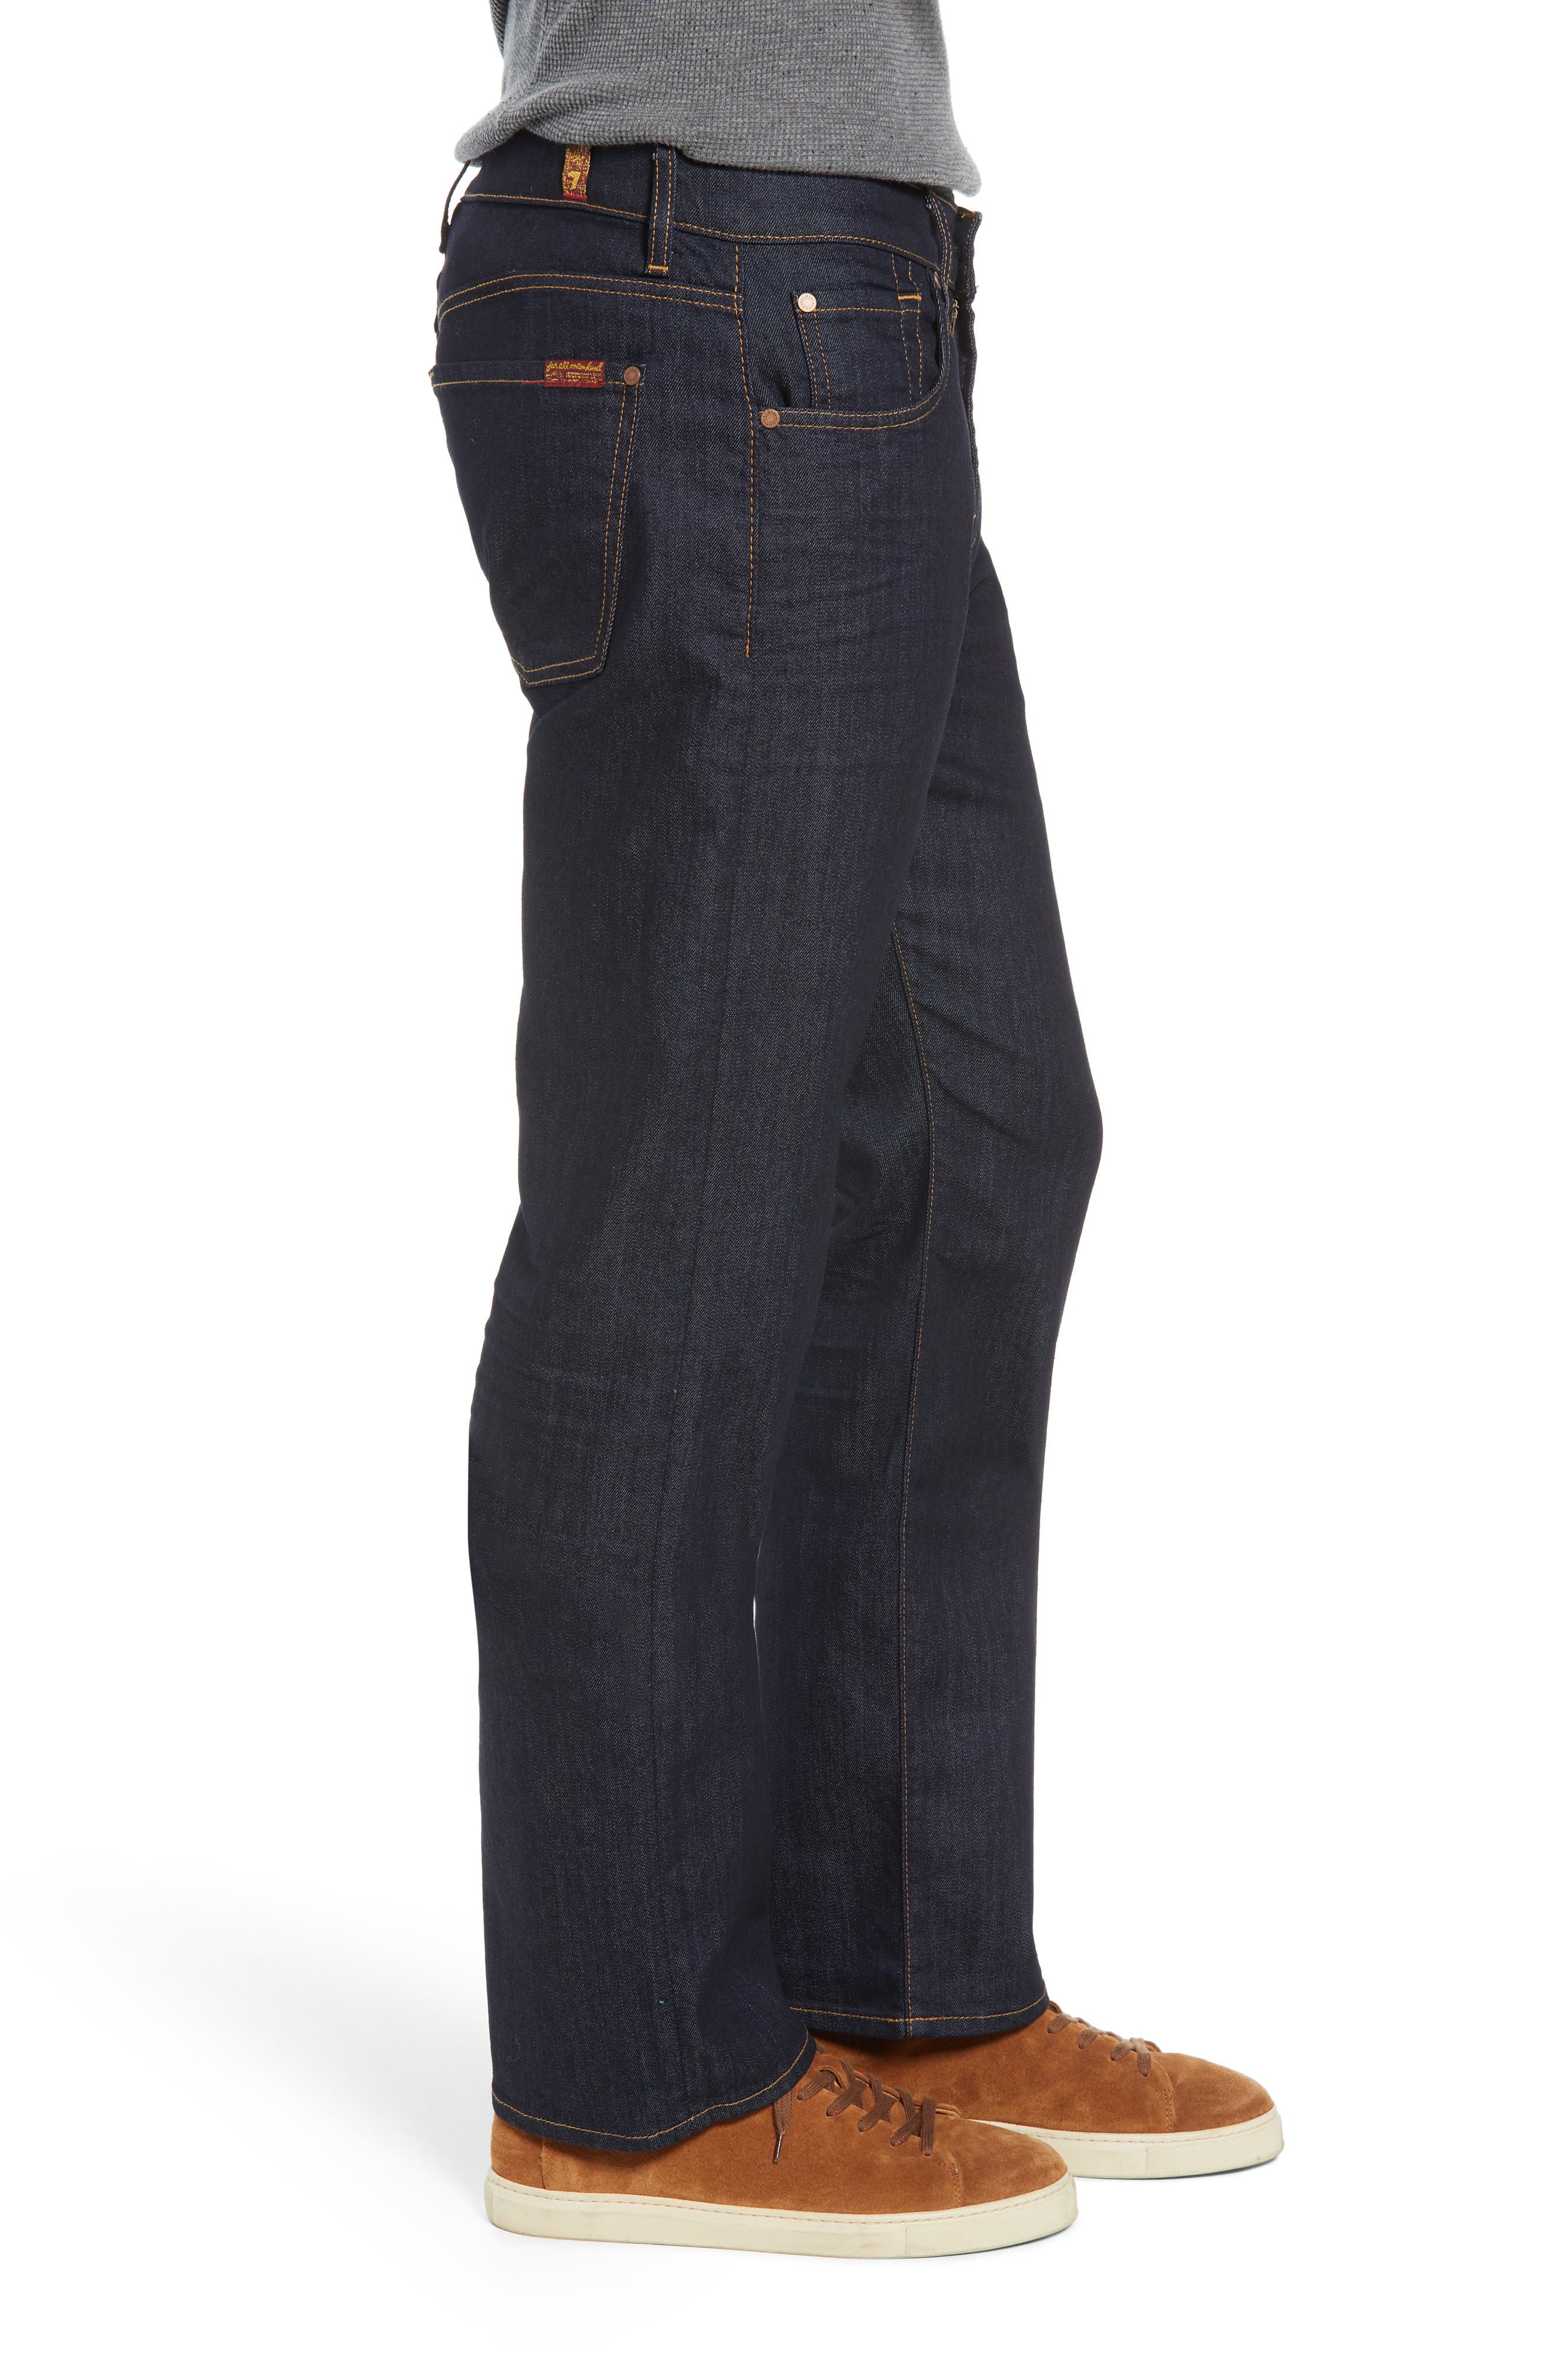 Austyn Airweft Relaxed Straight Leg Jeans,                             Alternate thumbnail 3, color,                             CAVEAT